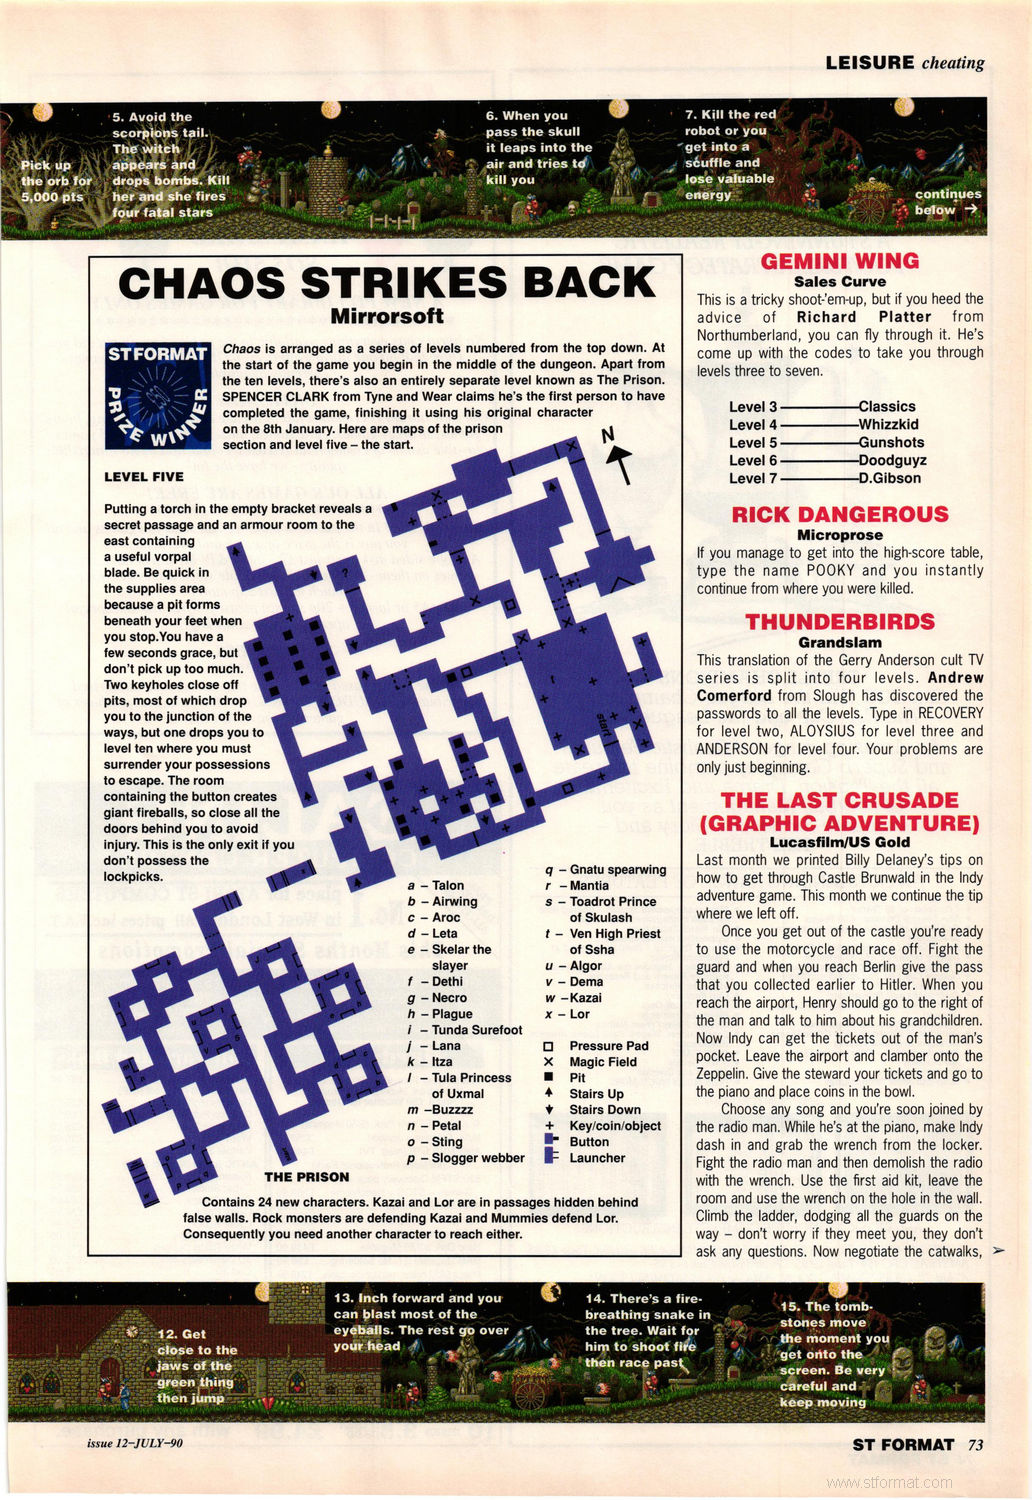 Chaos Strikes Back Hints published in British magazine 'ST Format', Issue #12 July 1990, Page 73